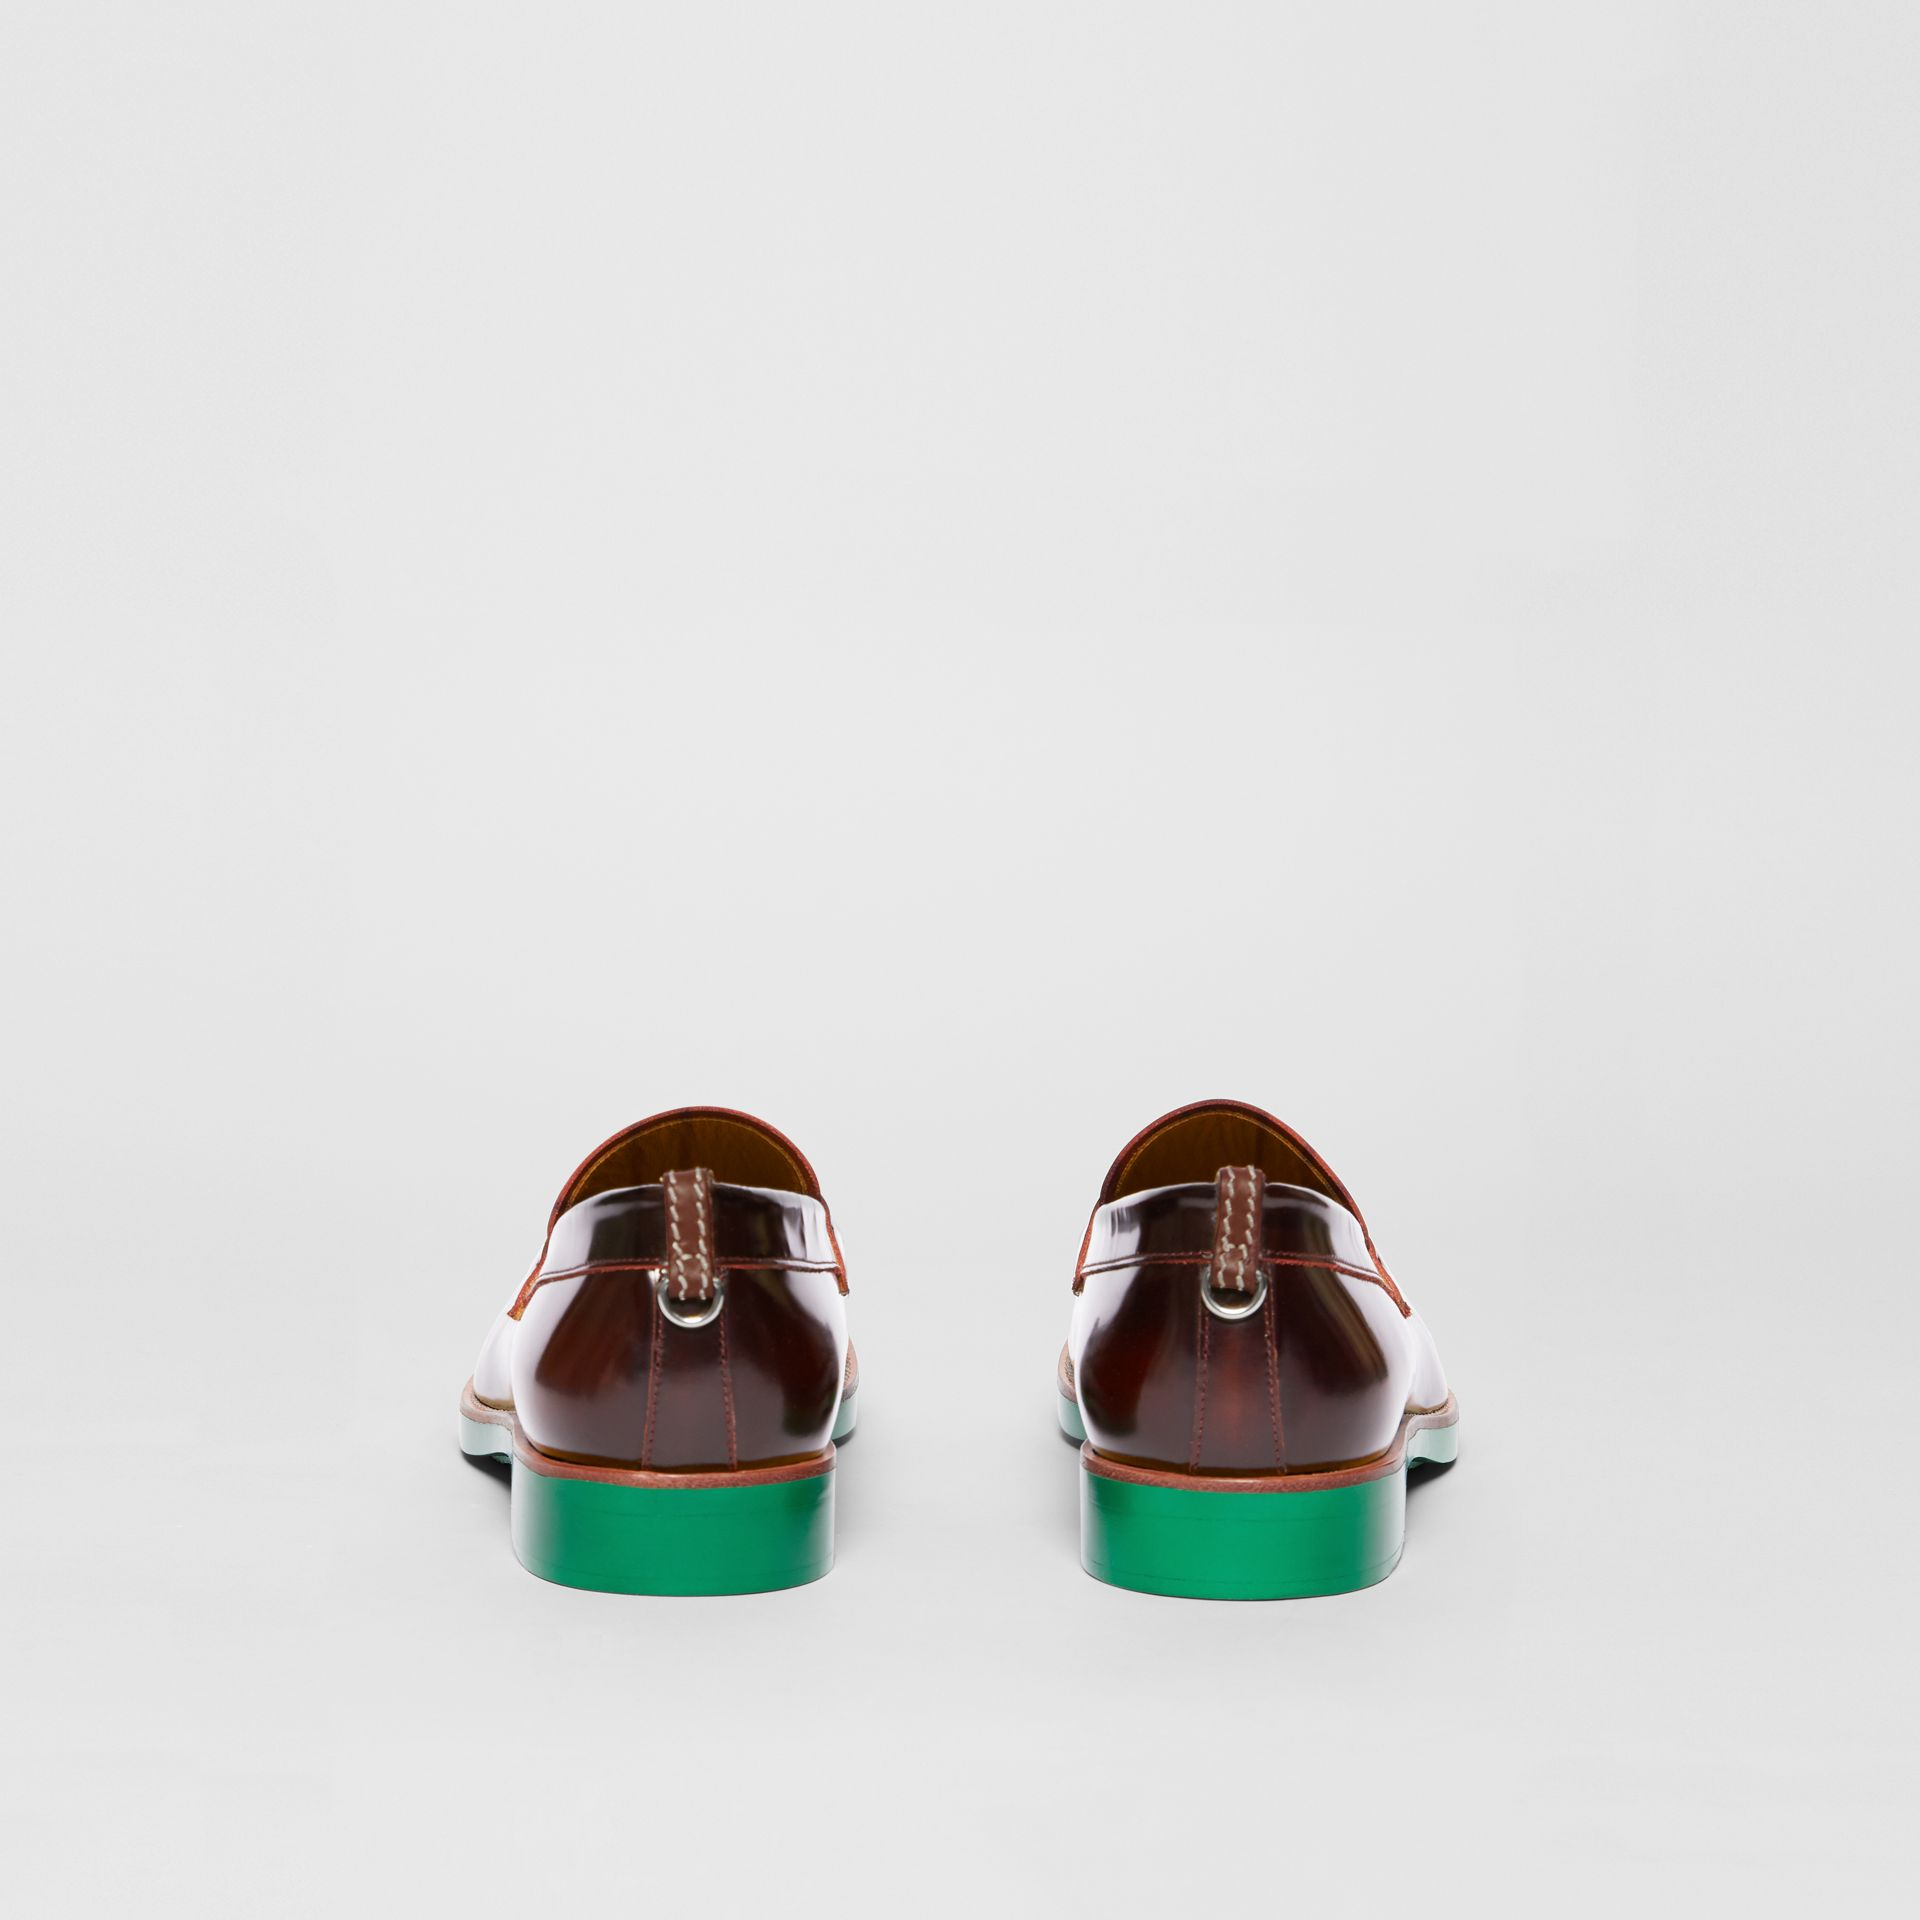 D-ring Detail Contrast Sole Leather Loafers in Bordeaux/green - Men | Burberry Hong Kong - gallery image 4